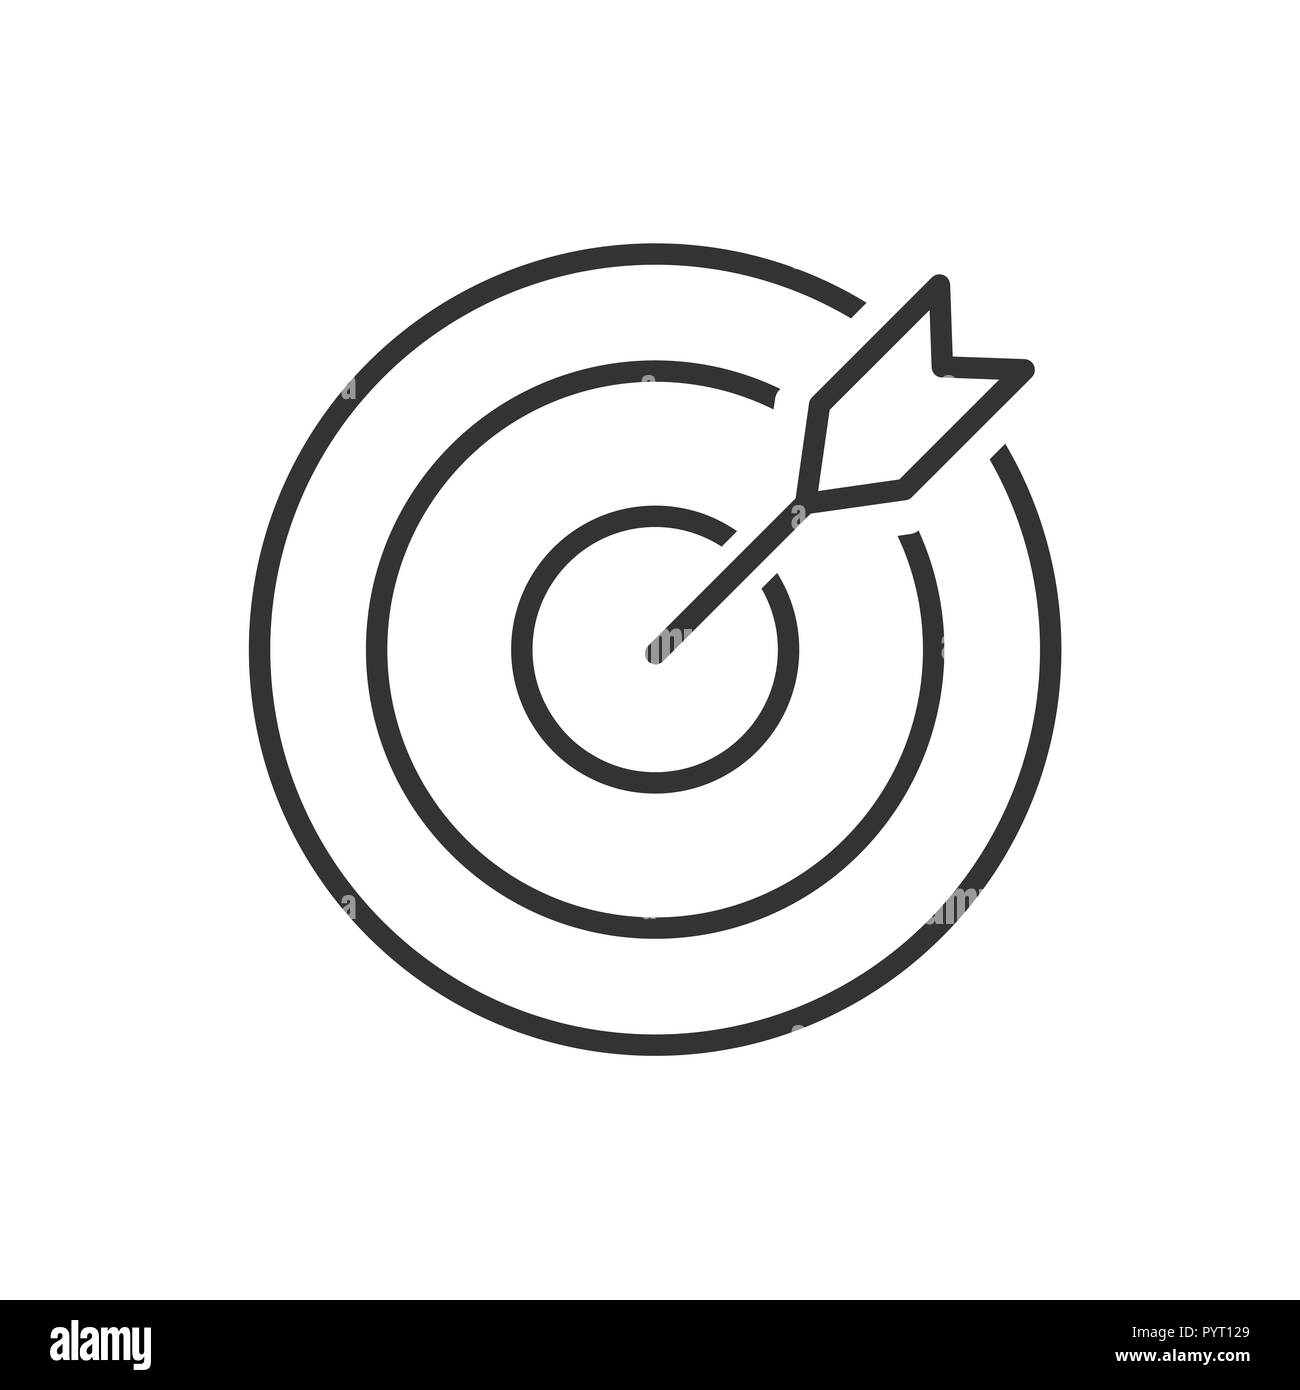 Target line icon on a white background. Vector illustration Stock Vector